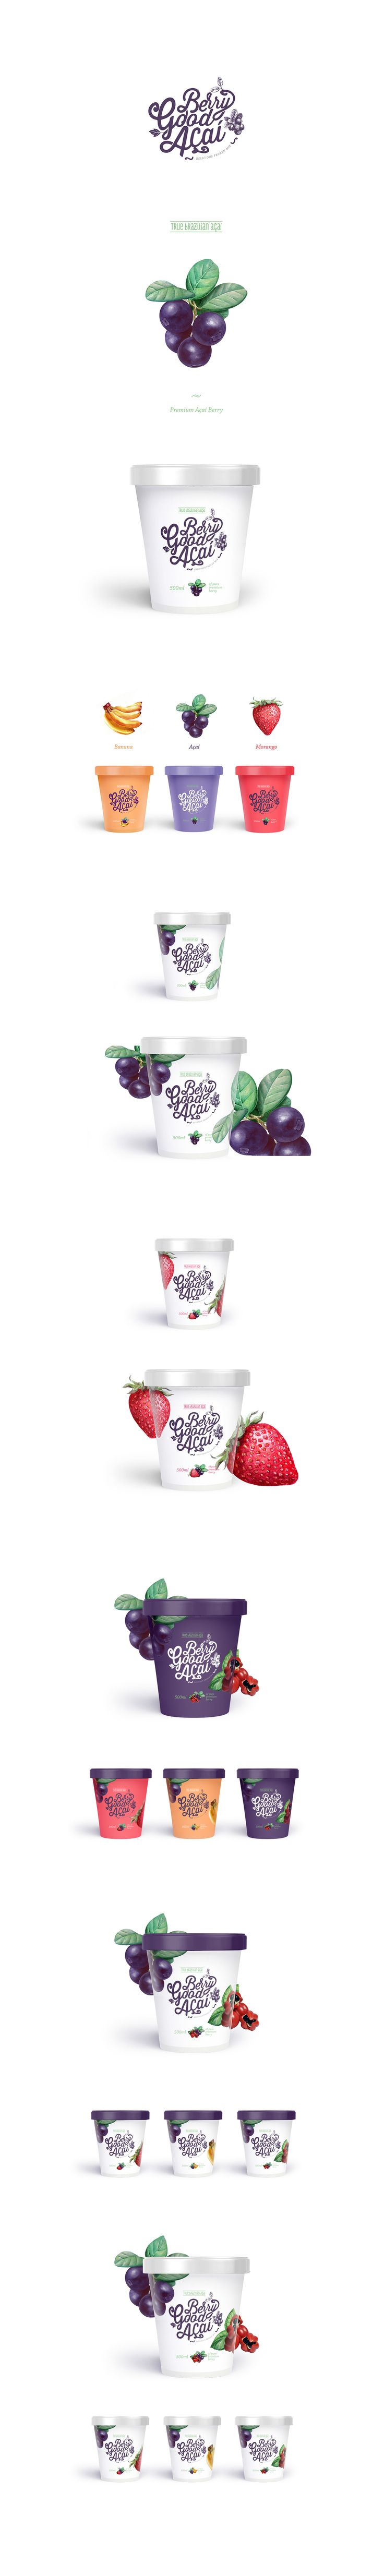 BERRY GOOD AÇAÍ on Behance